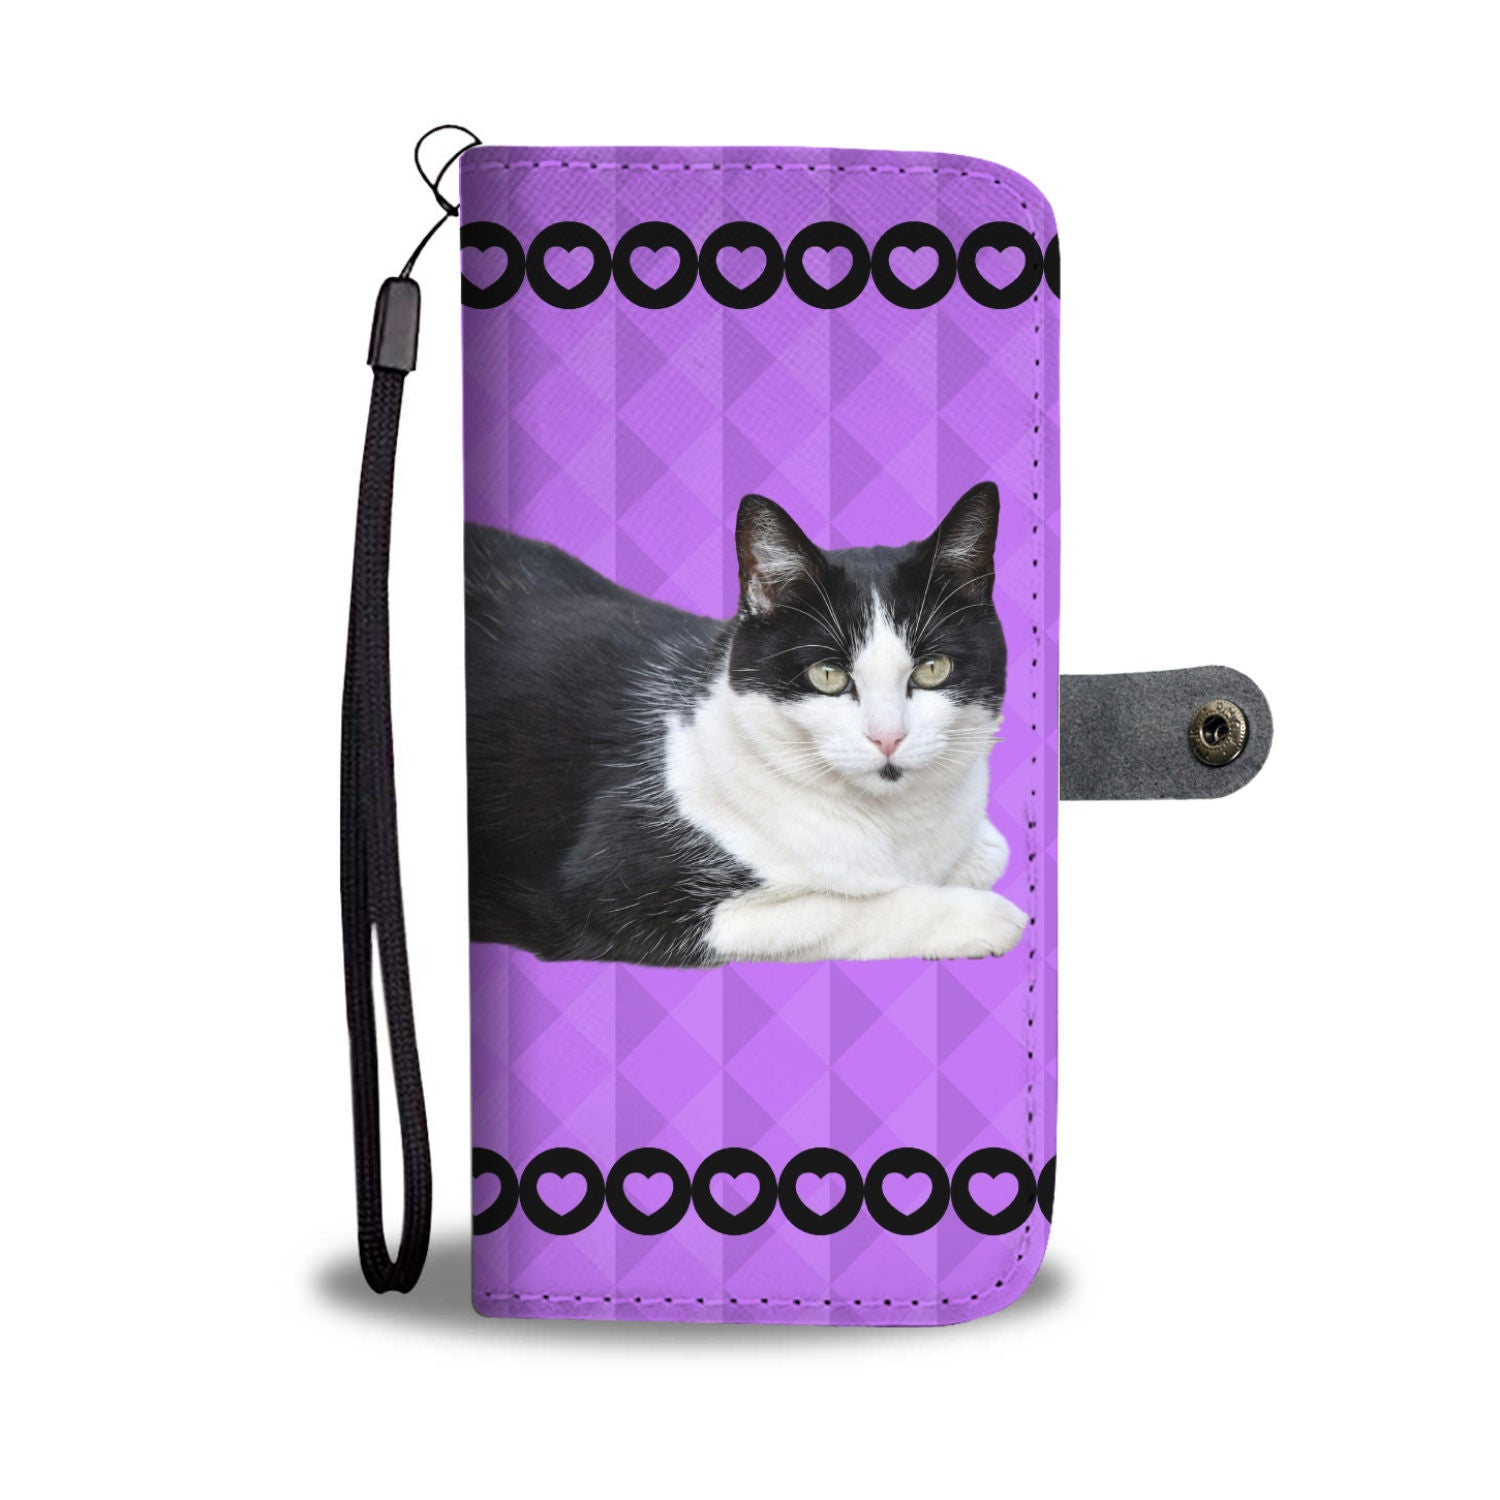 Black & White Cat Phone Case Wallet